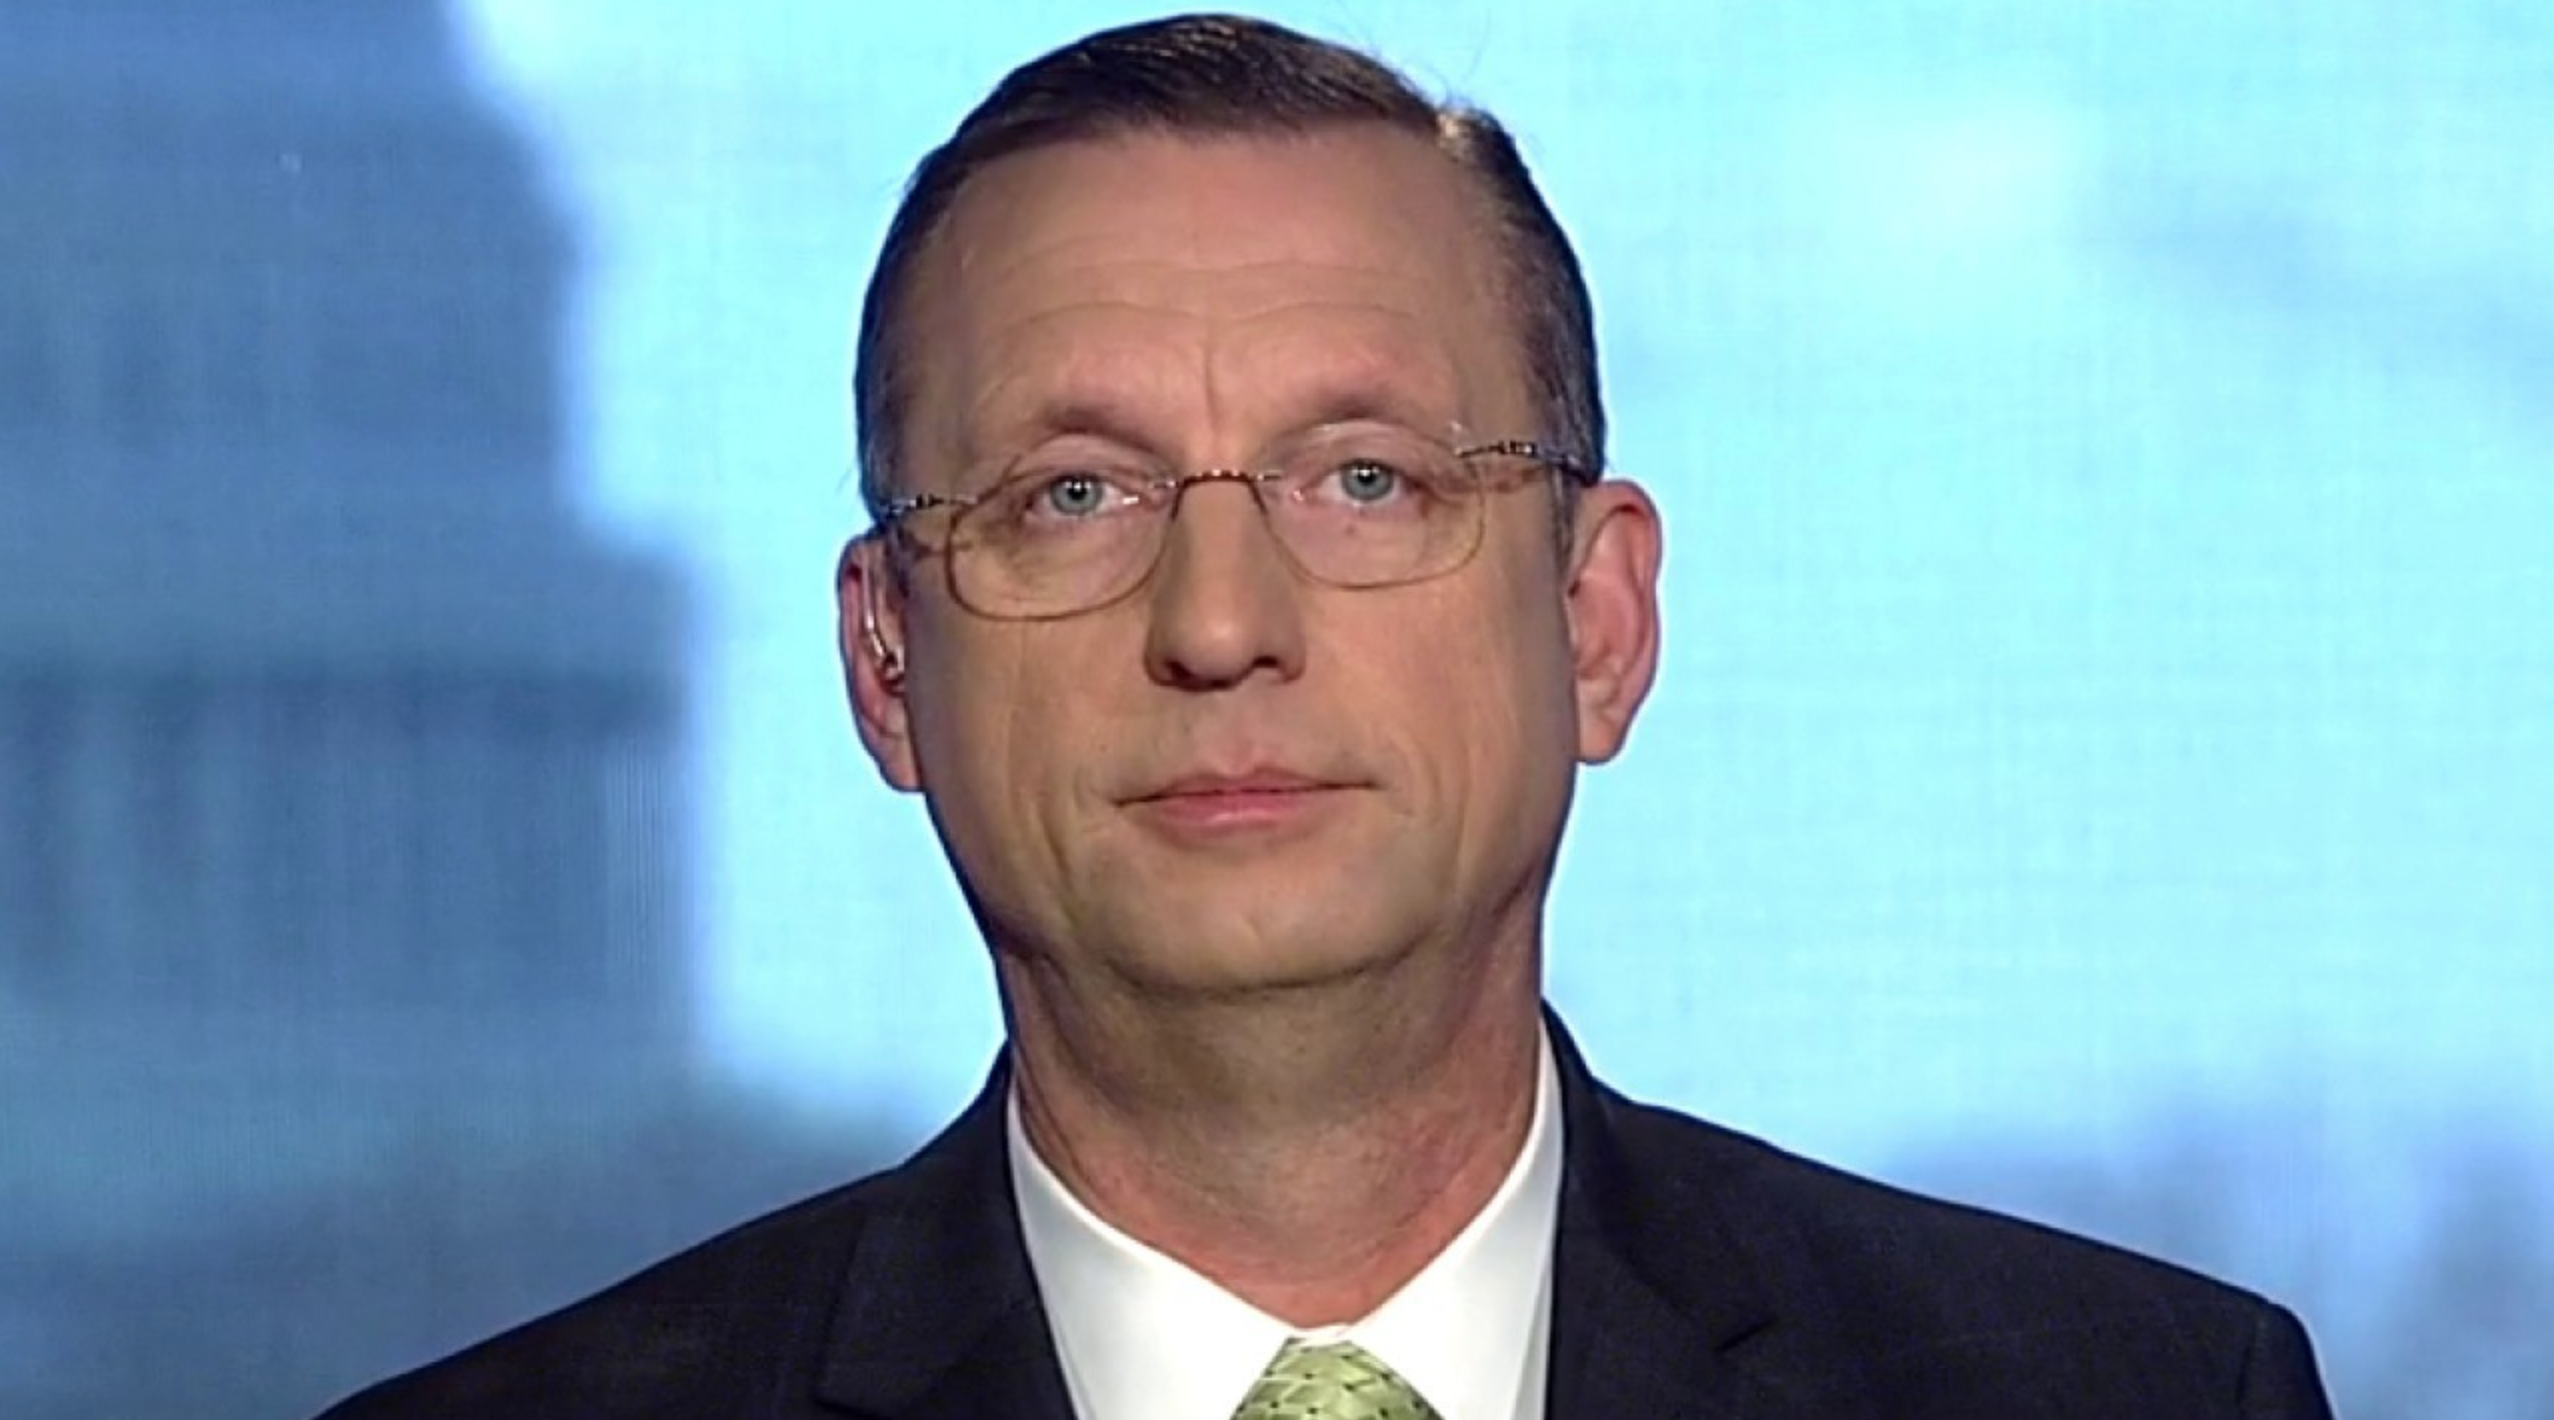 Westlake Legal Group Screen-Shot-2020-02-27-at-9.49.30-AM Doug Collins: Dems 'playing games,' refuse to acknowledge FISA abuses in Trump-Russia probe Joshua Nelson fox-news/shows/fox-friends fox-news/politics/justice-department fox-news/politics/house-of-representatives/republicans fox-news/politics/house-of-representatives/democrats fox-news/politics/elections/house-of-representatives fox-news/news-events/russia-investigation fox-news/media/fox-news-flash fox news fnc/media fnc b25c5d9e-fed3-5082-b686-35dd0961d69a article